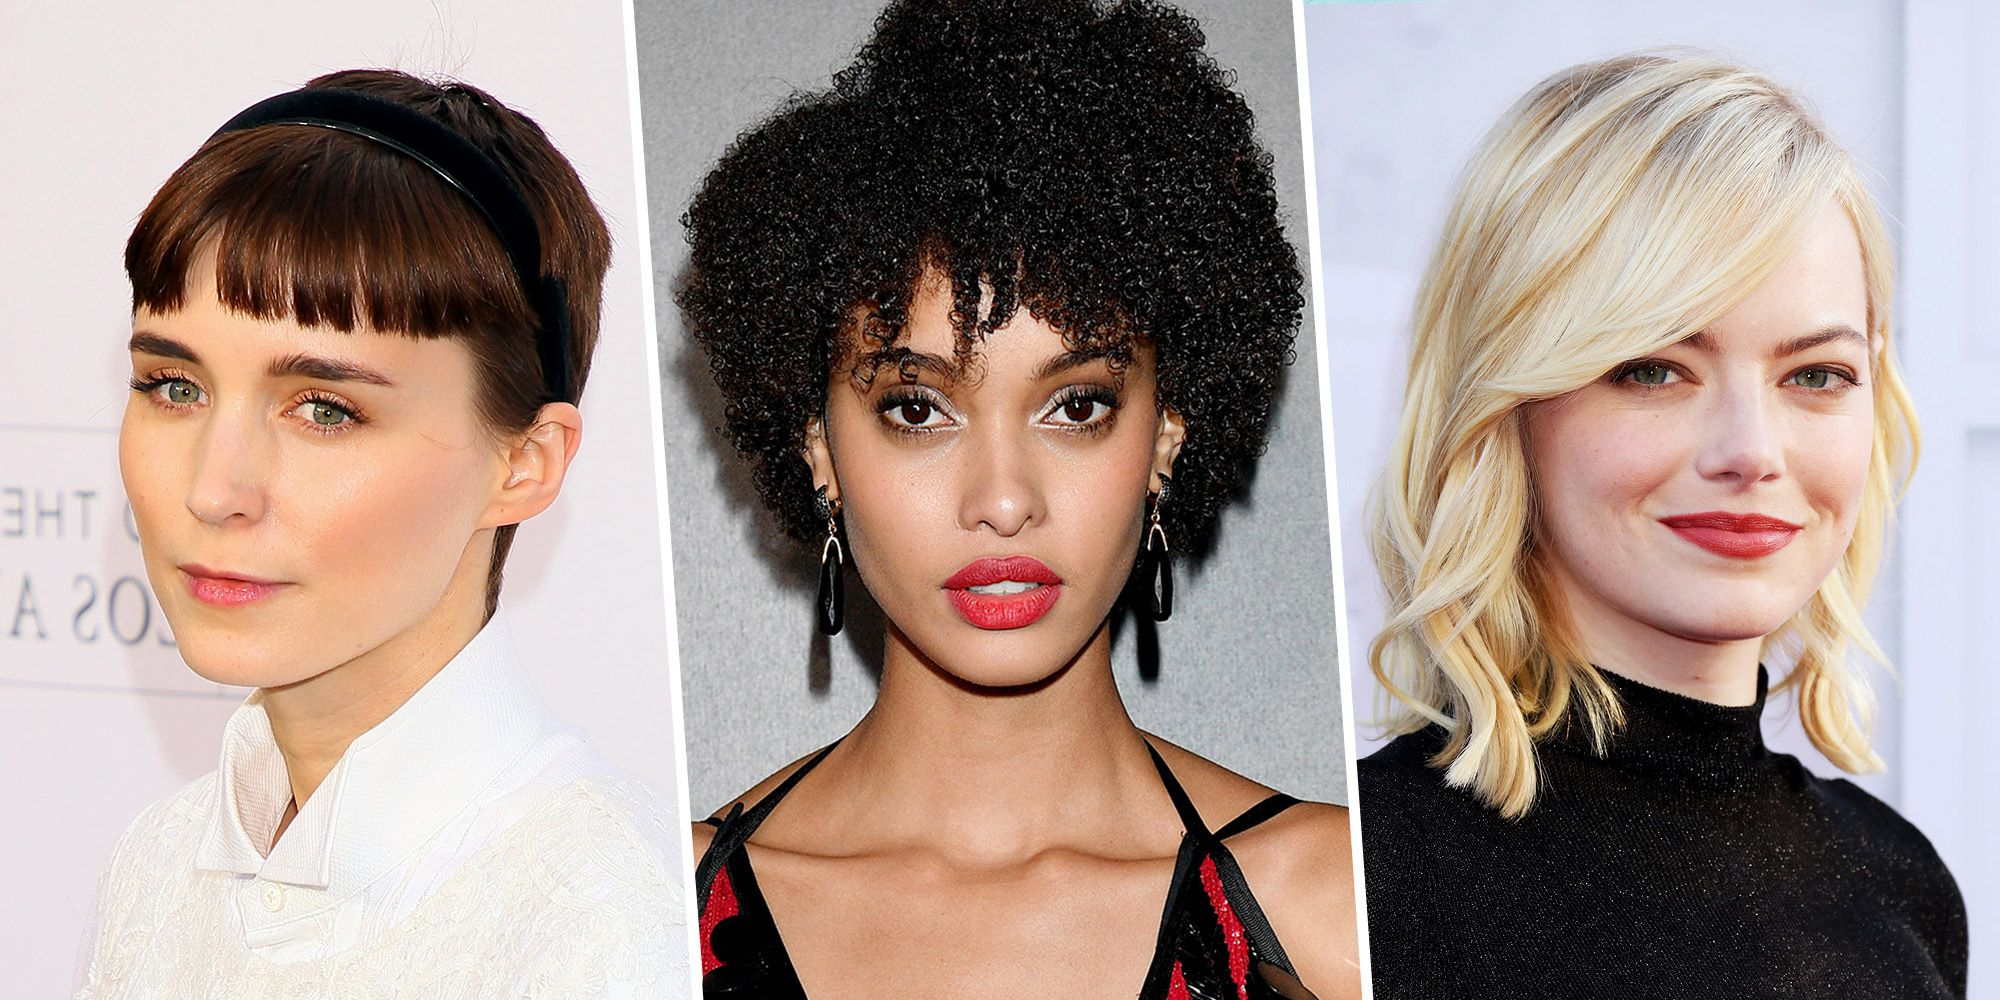 65 Best Short Hairstyles, Haircuts, And Short Hair Ideas For 2018 Throughout Short Haircuts With Side Bangs (Gallery 23 of 25)